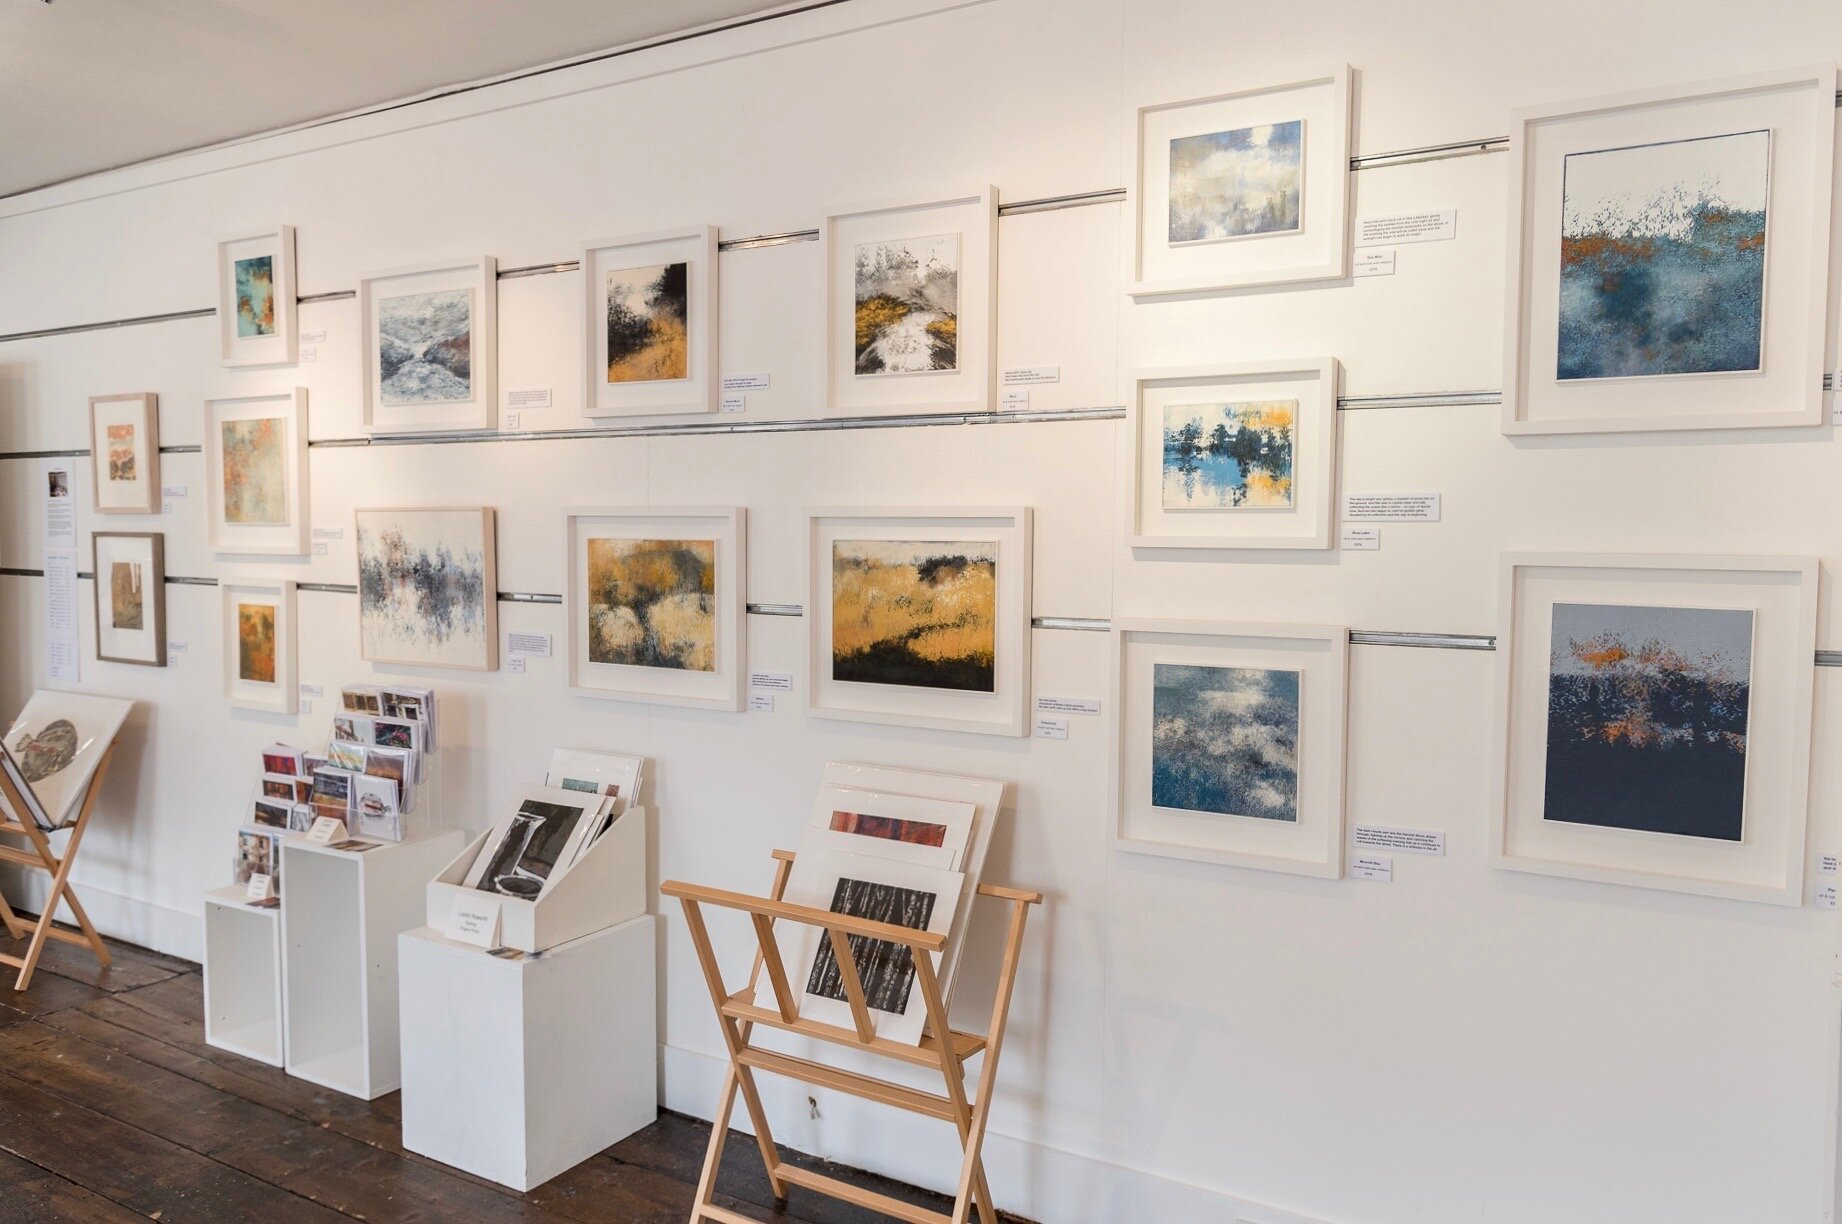 'Six in the City' Bristol Guild, August 2019